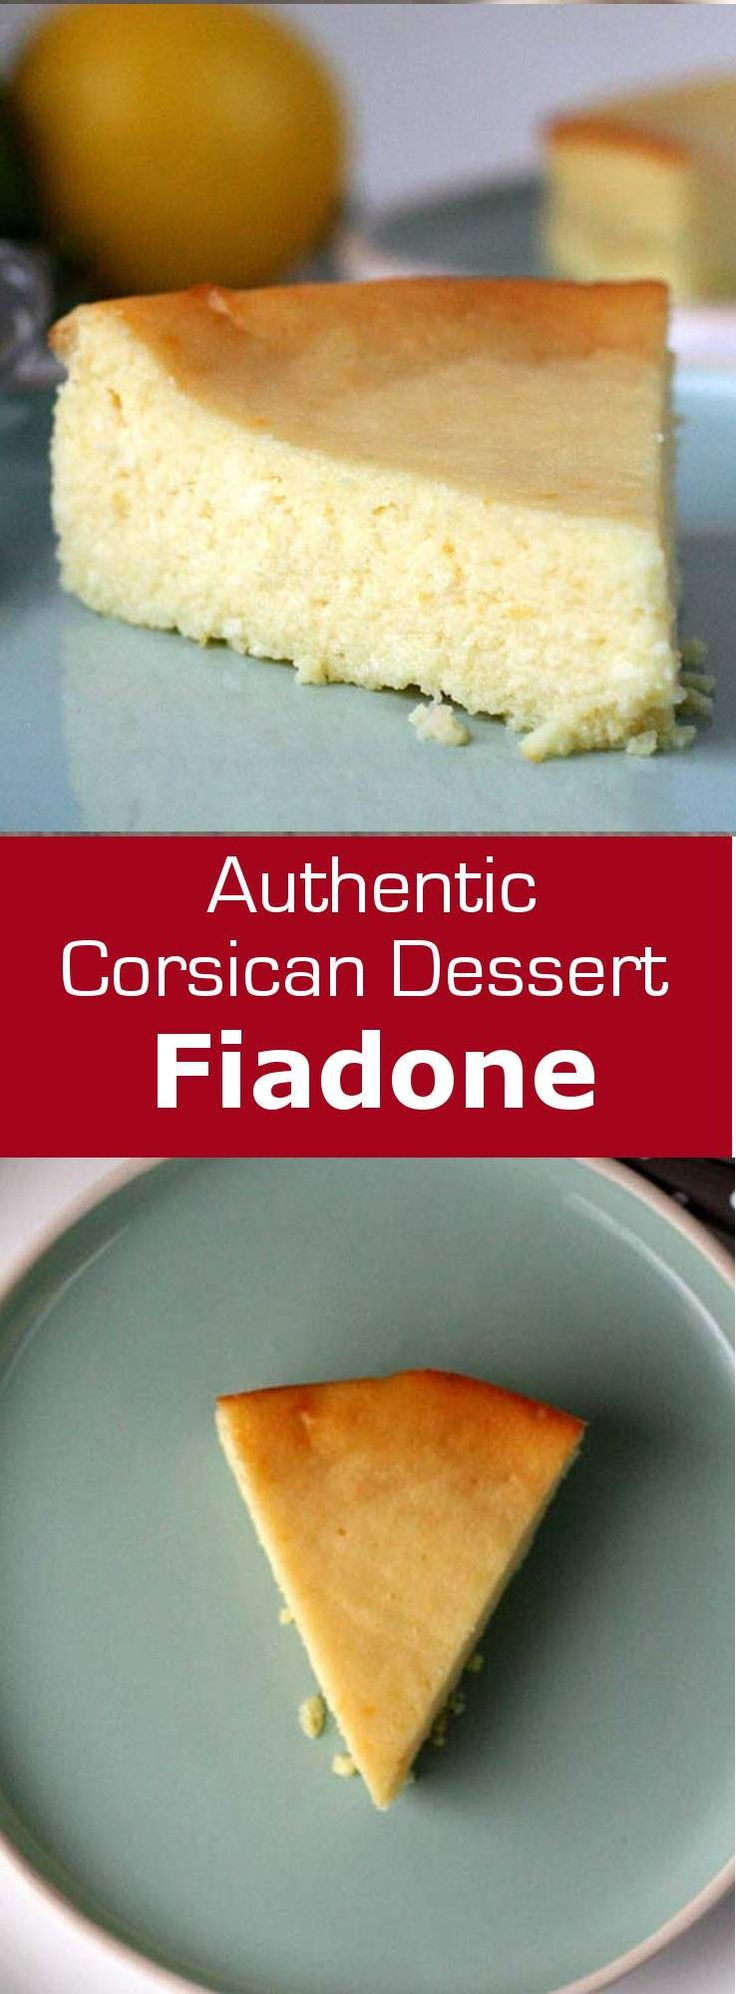 Fiadone is a cheesecake made with brocciu, a traditional cheese from Corsica…